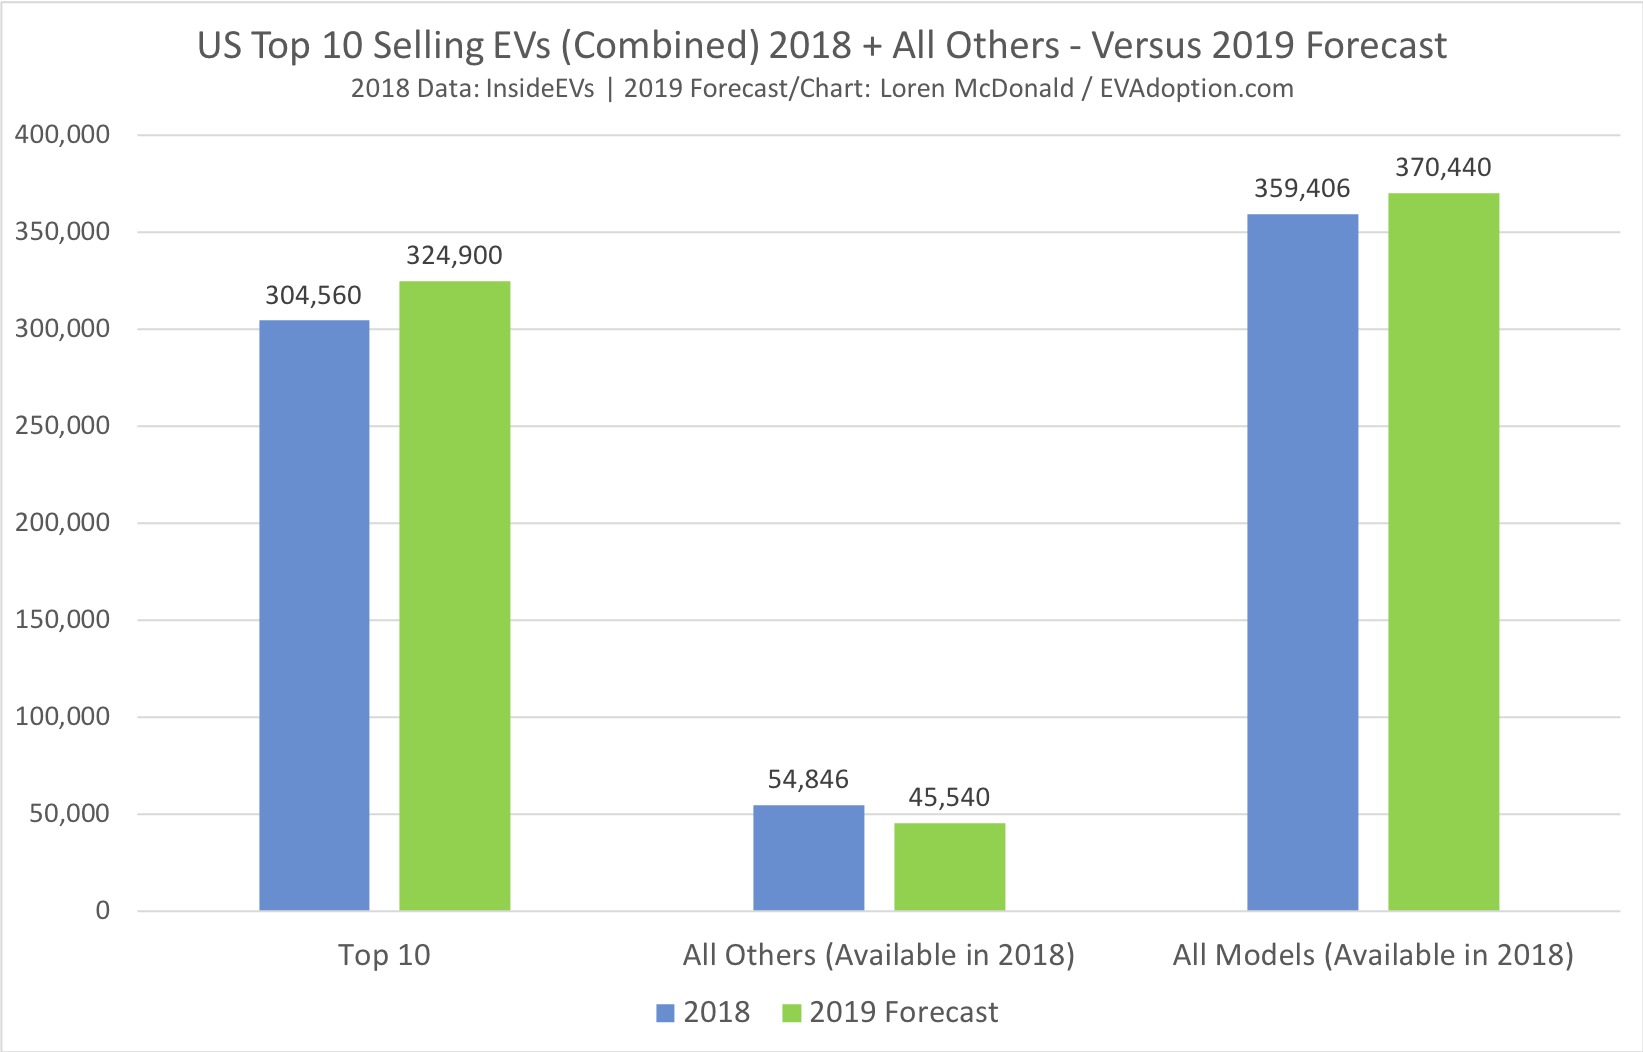 US Top 10 Selling EVs (Combined) 2018 + All Others - Versus 2019 Forecast